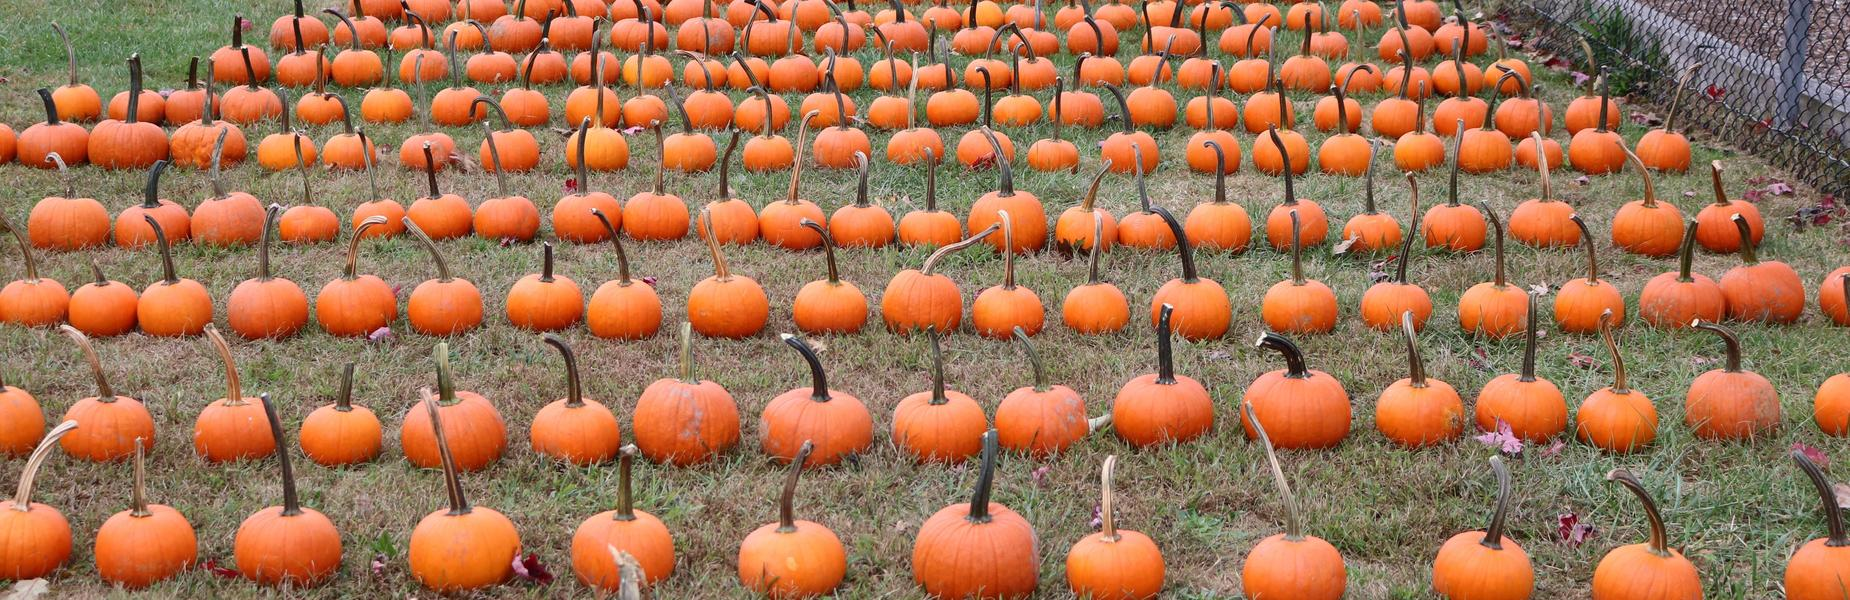 Photo of rows of pumpkins at annual Pumpkin Patch.